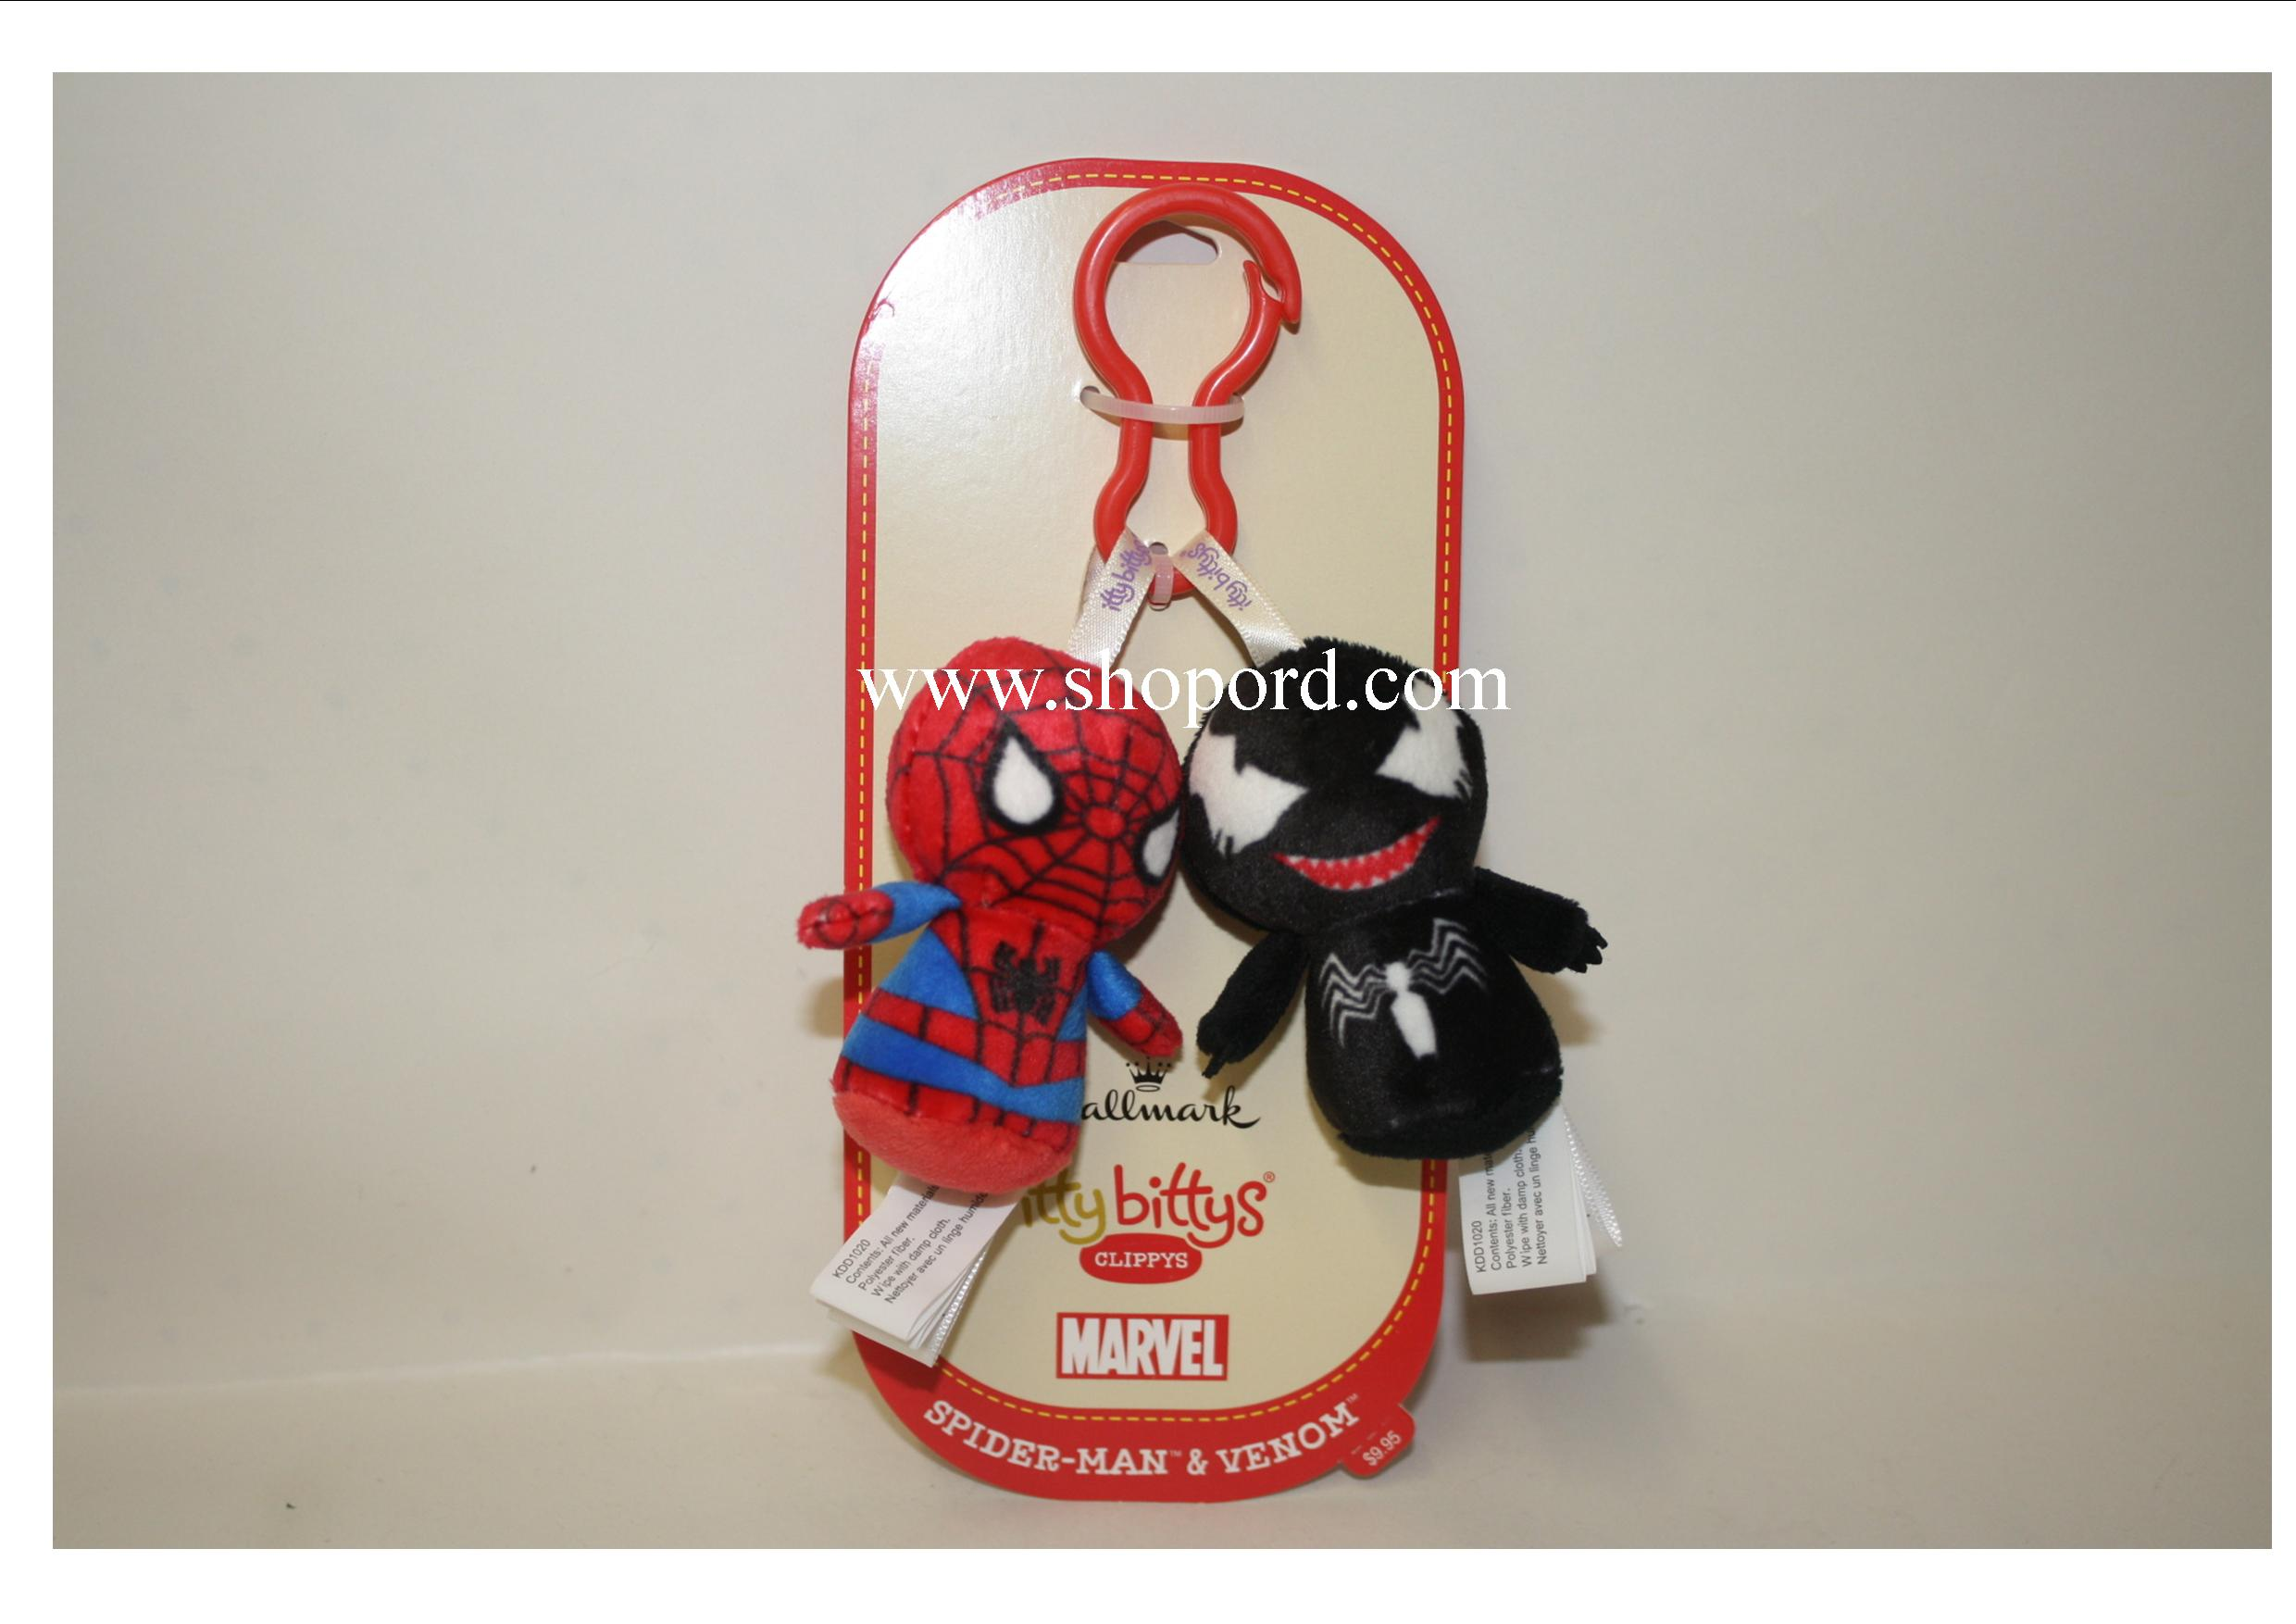 Hallmark itty bitty Clippys Marvel Spider Man & Venom Plush KDD1020